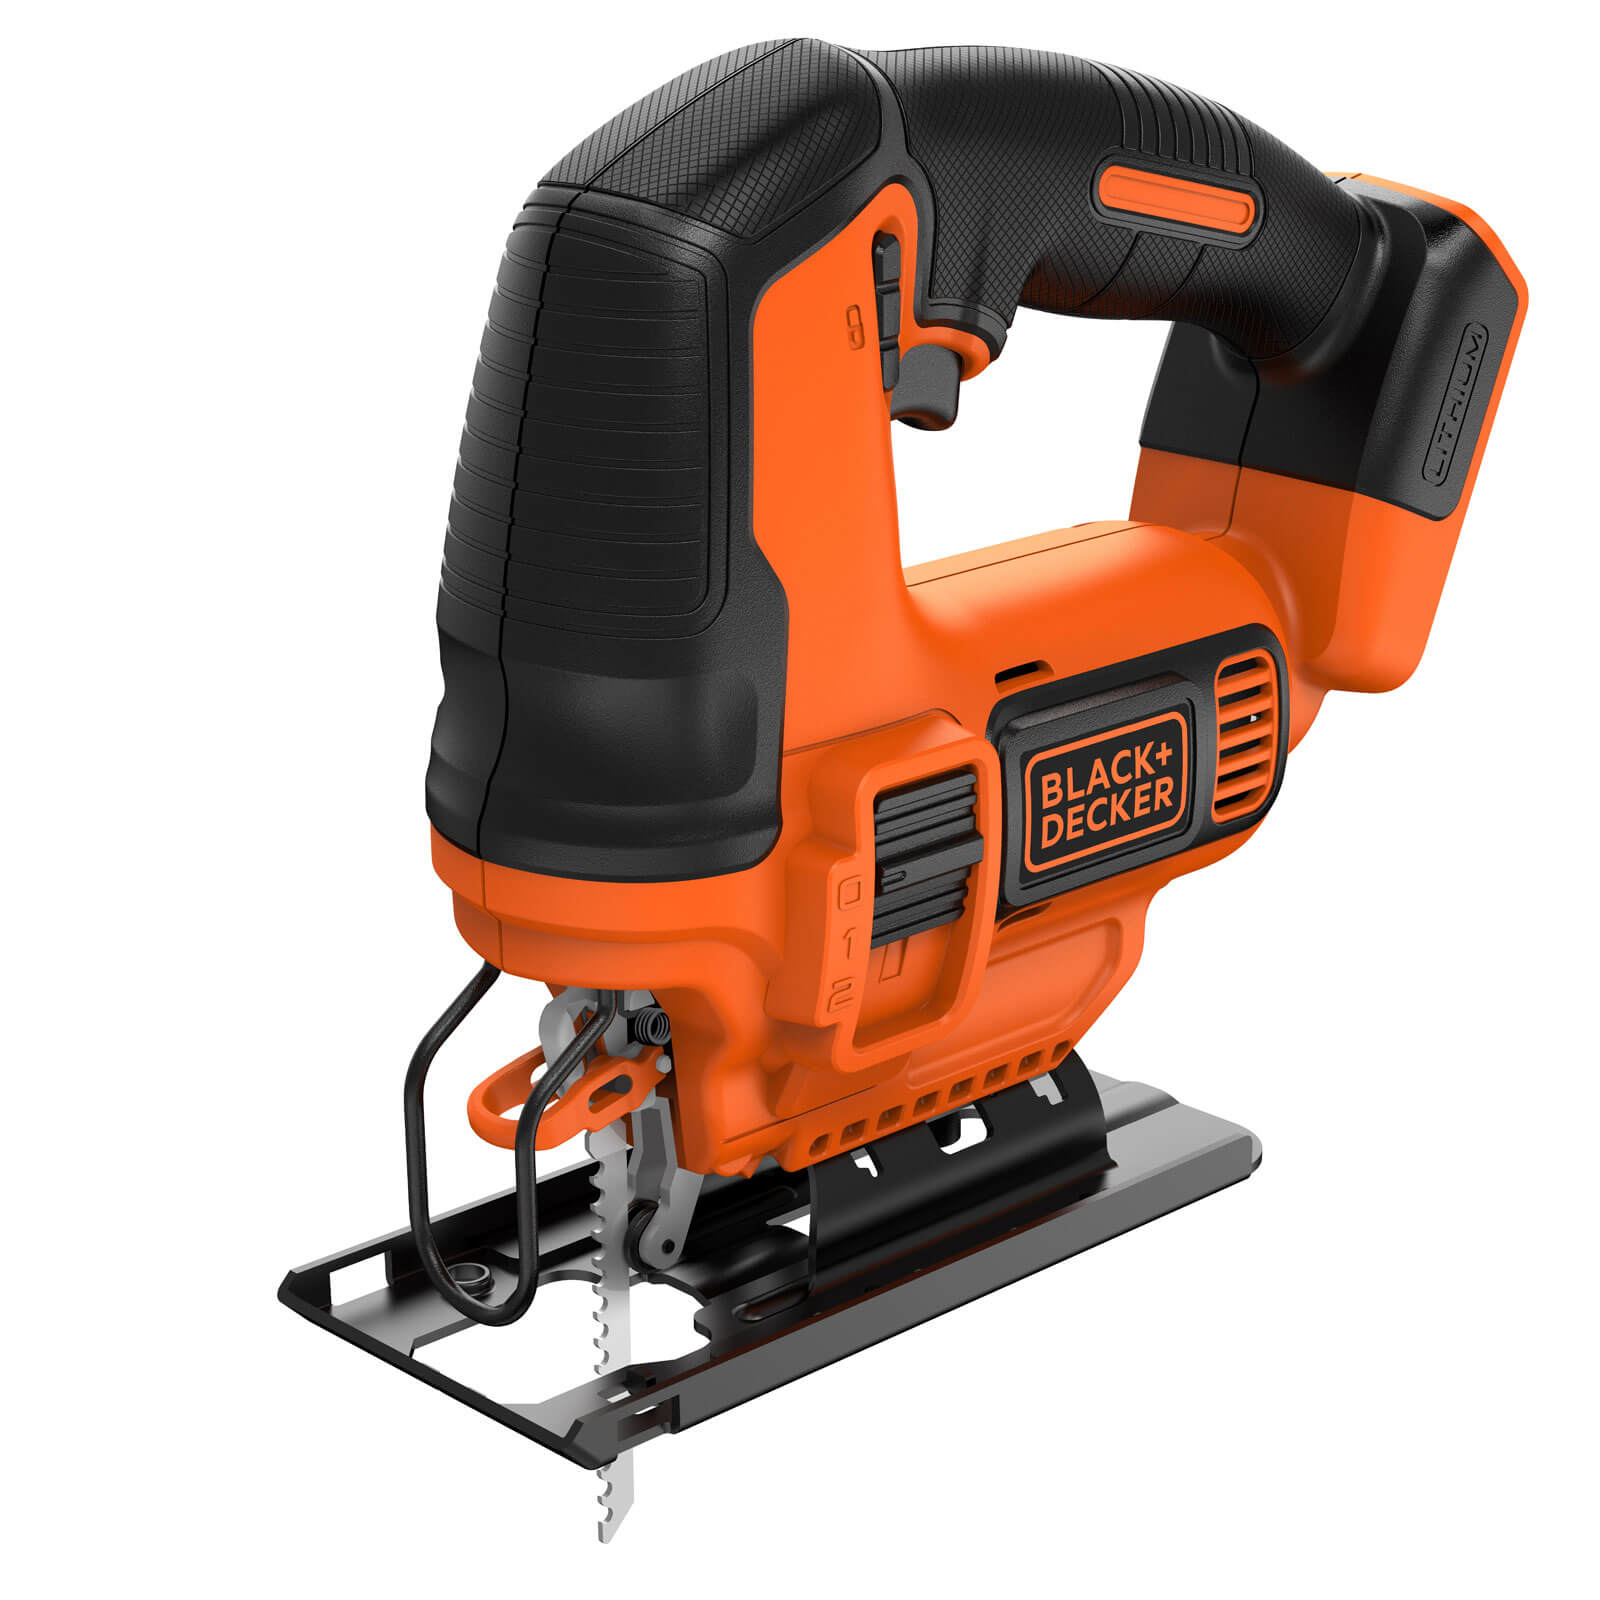 Image of Black & Decker BDCJS18N 18v Cordless Jigsaw No Batteries No Charger No Case